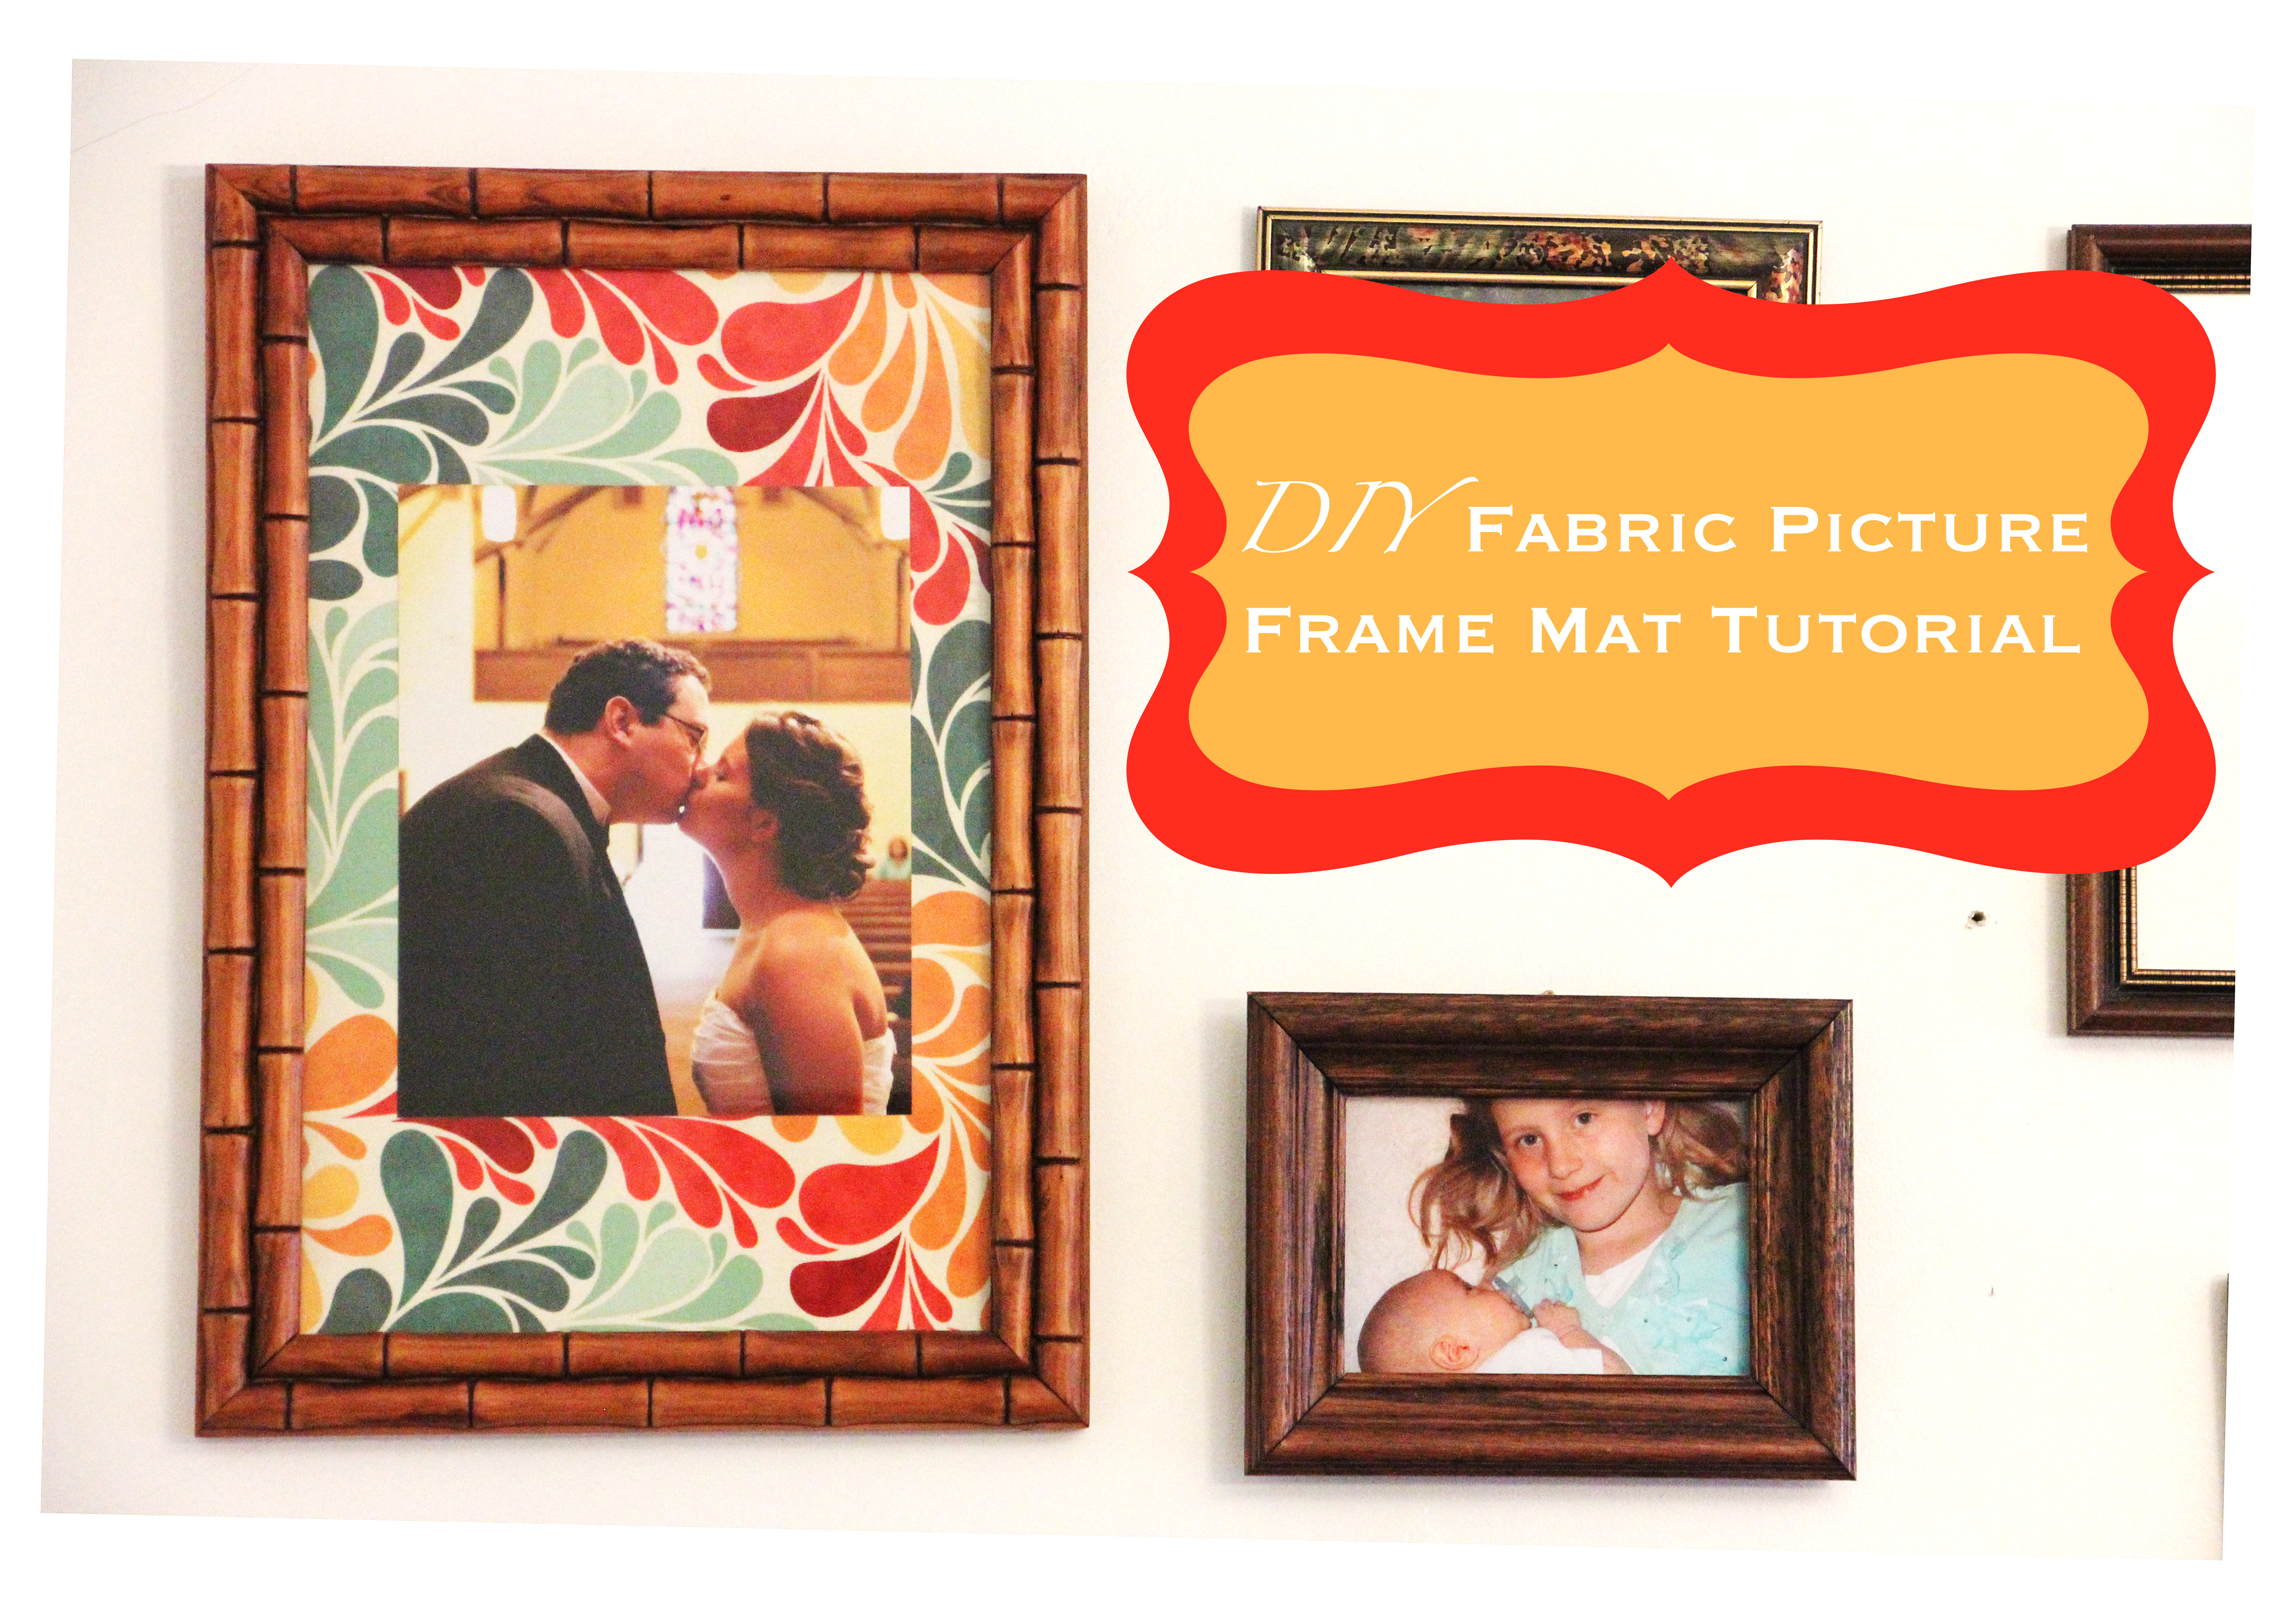 diy fabric picture frame mats